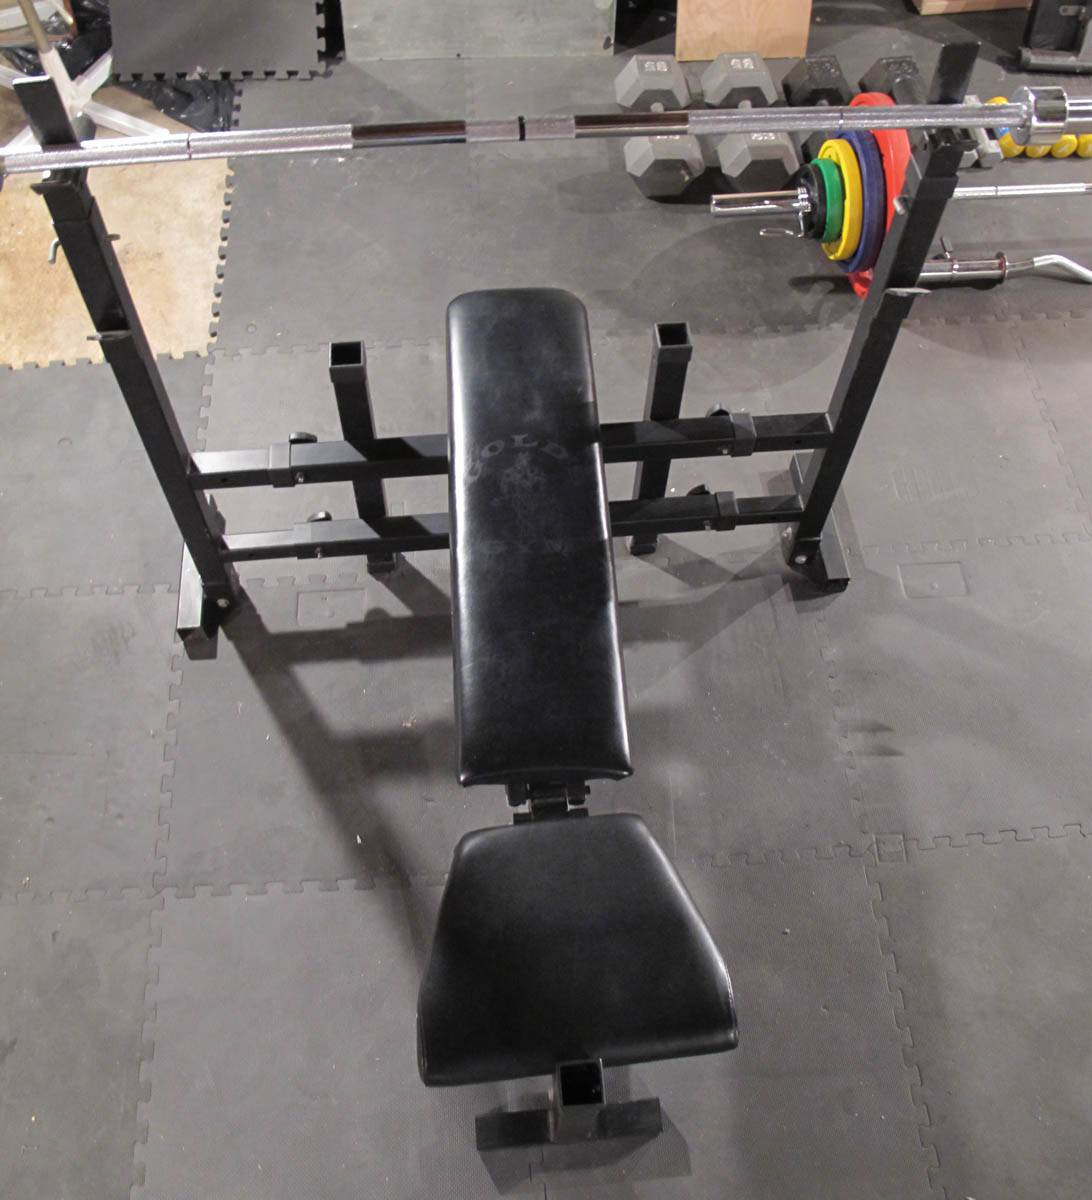 Gold Gym Bench Press With 45 Lb Bar And Weight Clamps